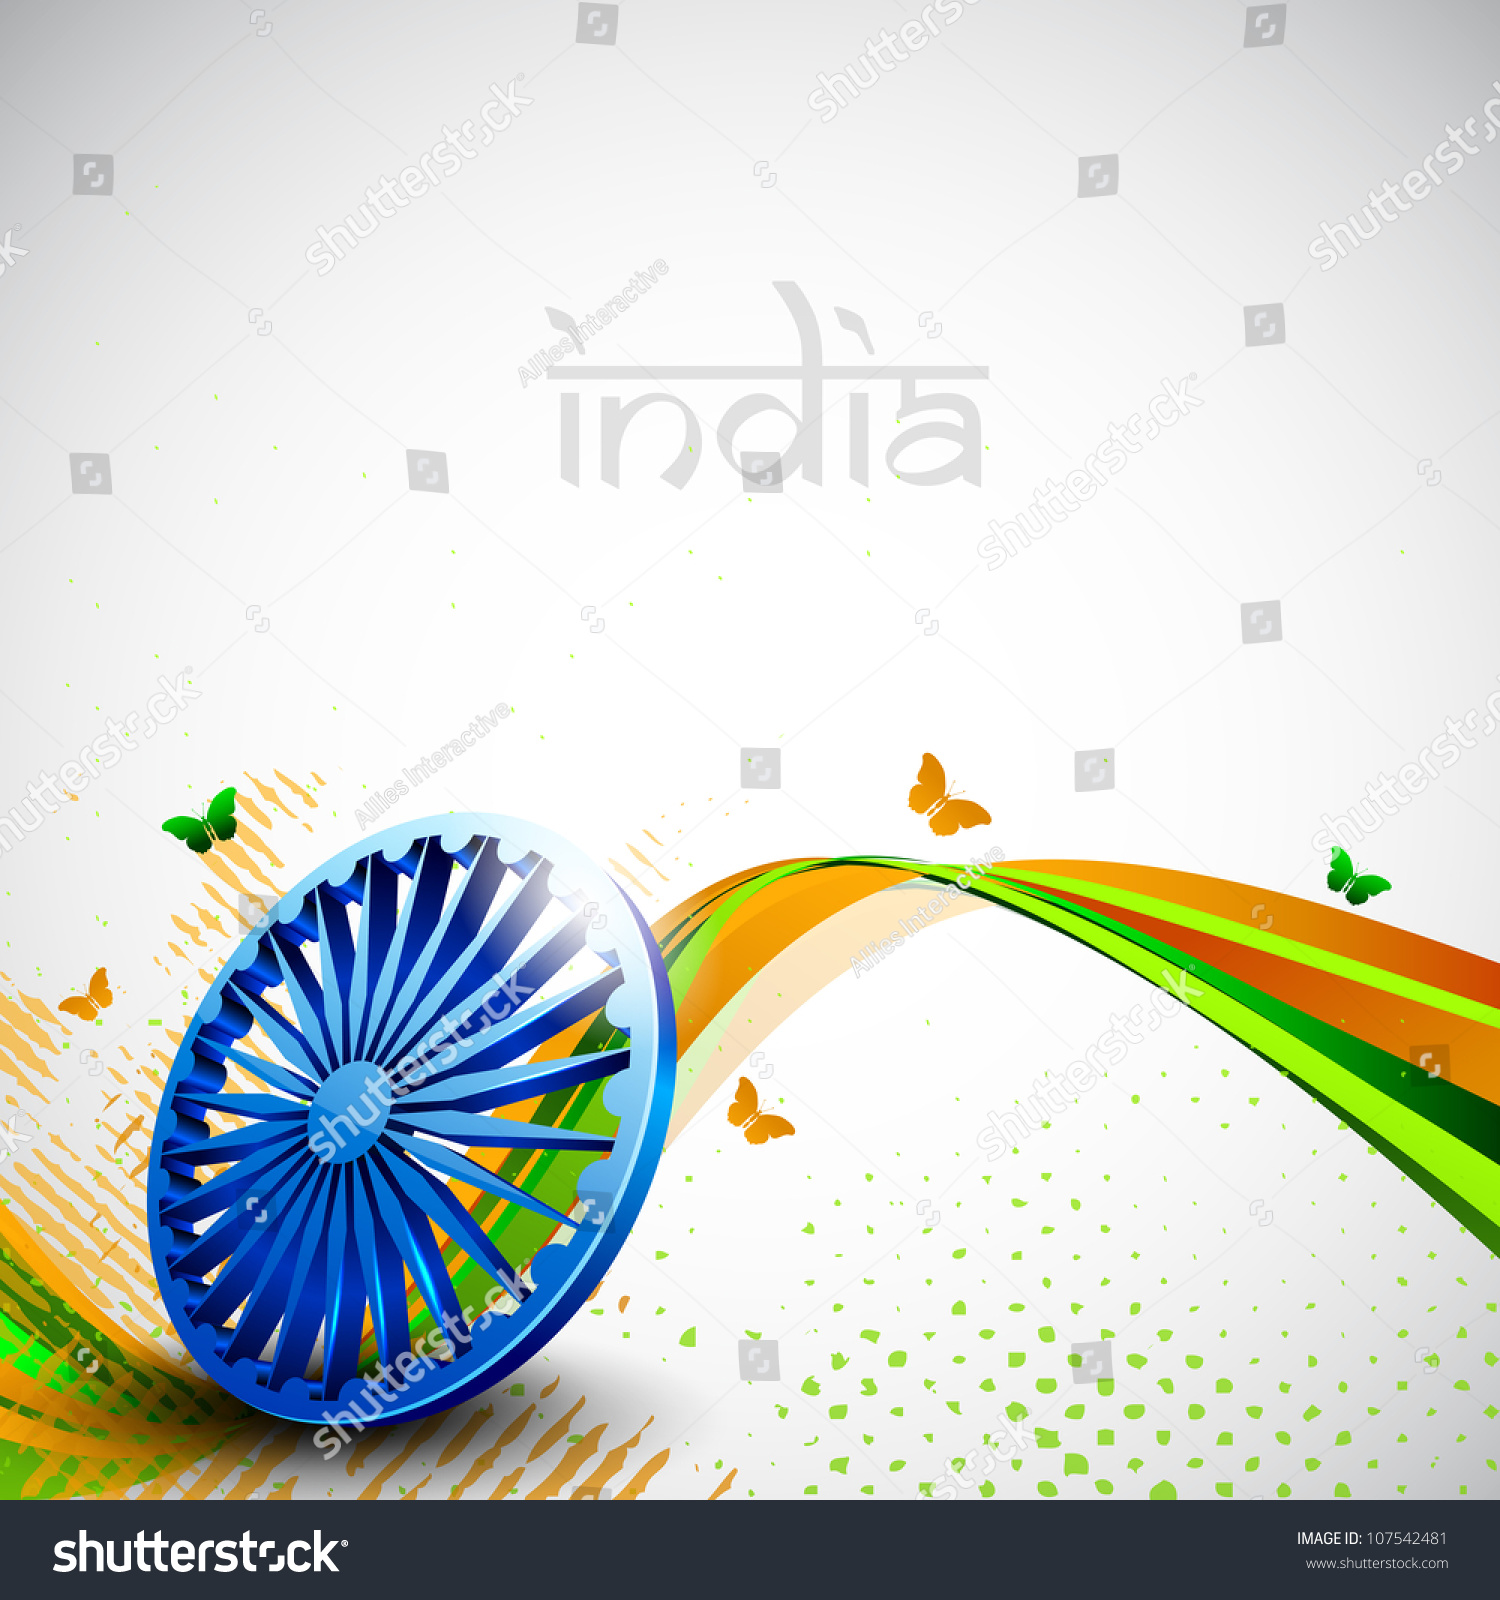 Colors website ashoka - Indian Flag Color Creative Wave Background With 3d Asoka Wheel And Butterflies Eps 10